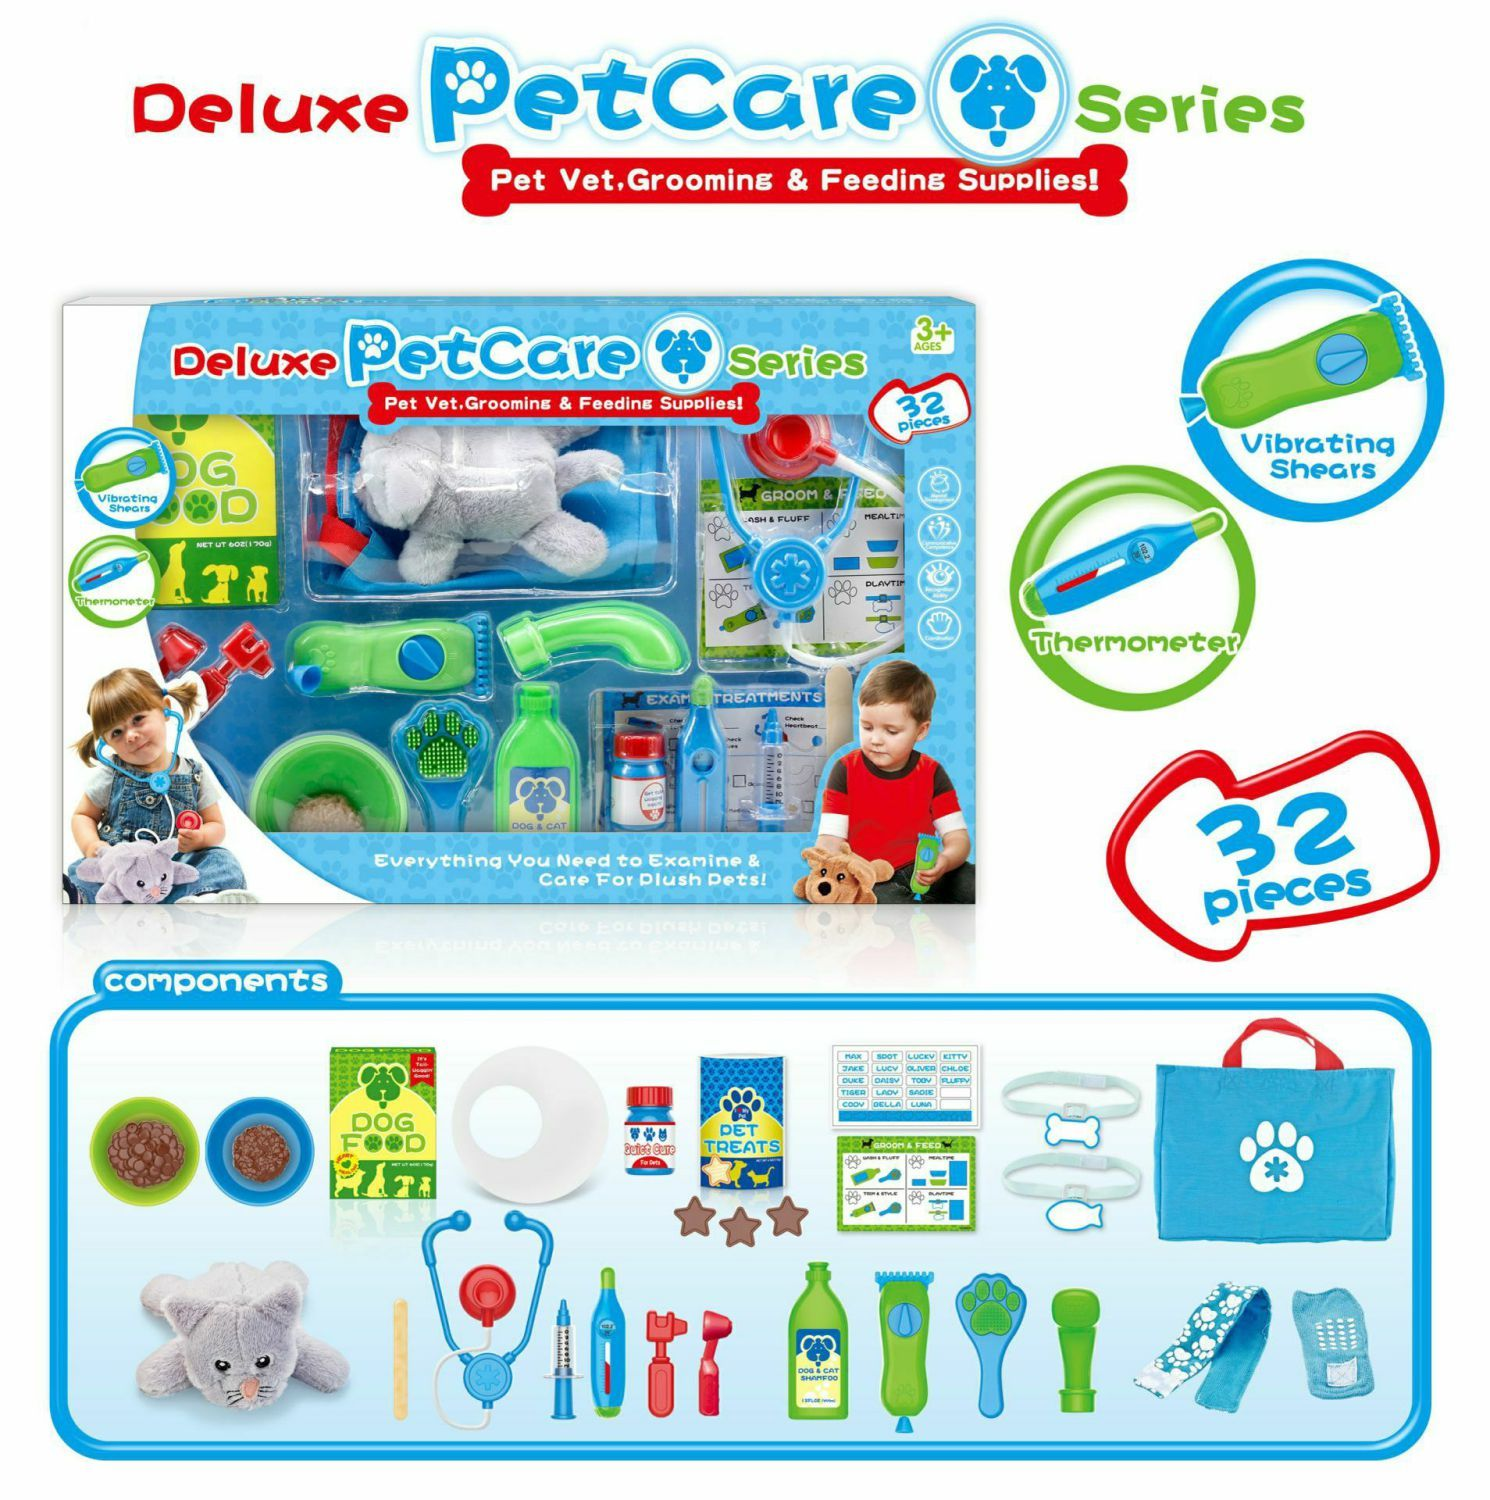 Custom Rc Cars Pretend Pet Care Toy Cat Vet. Grooming & Feeding Supplies Series